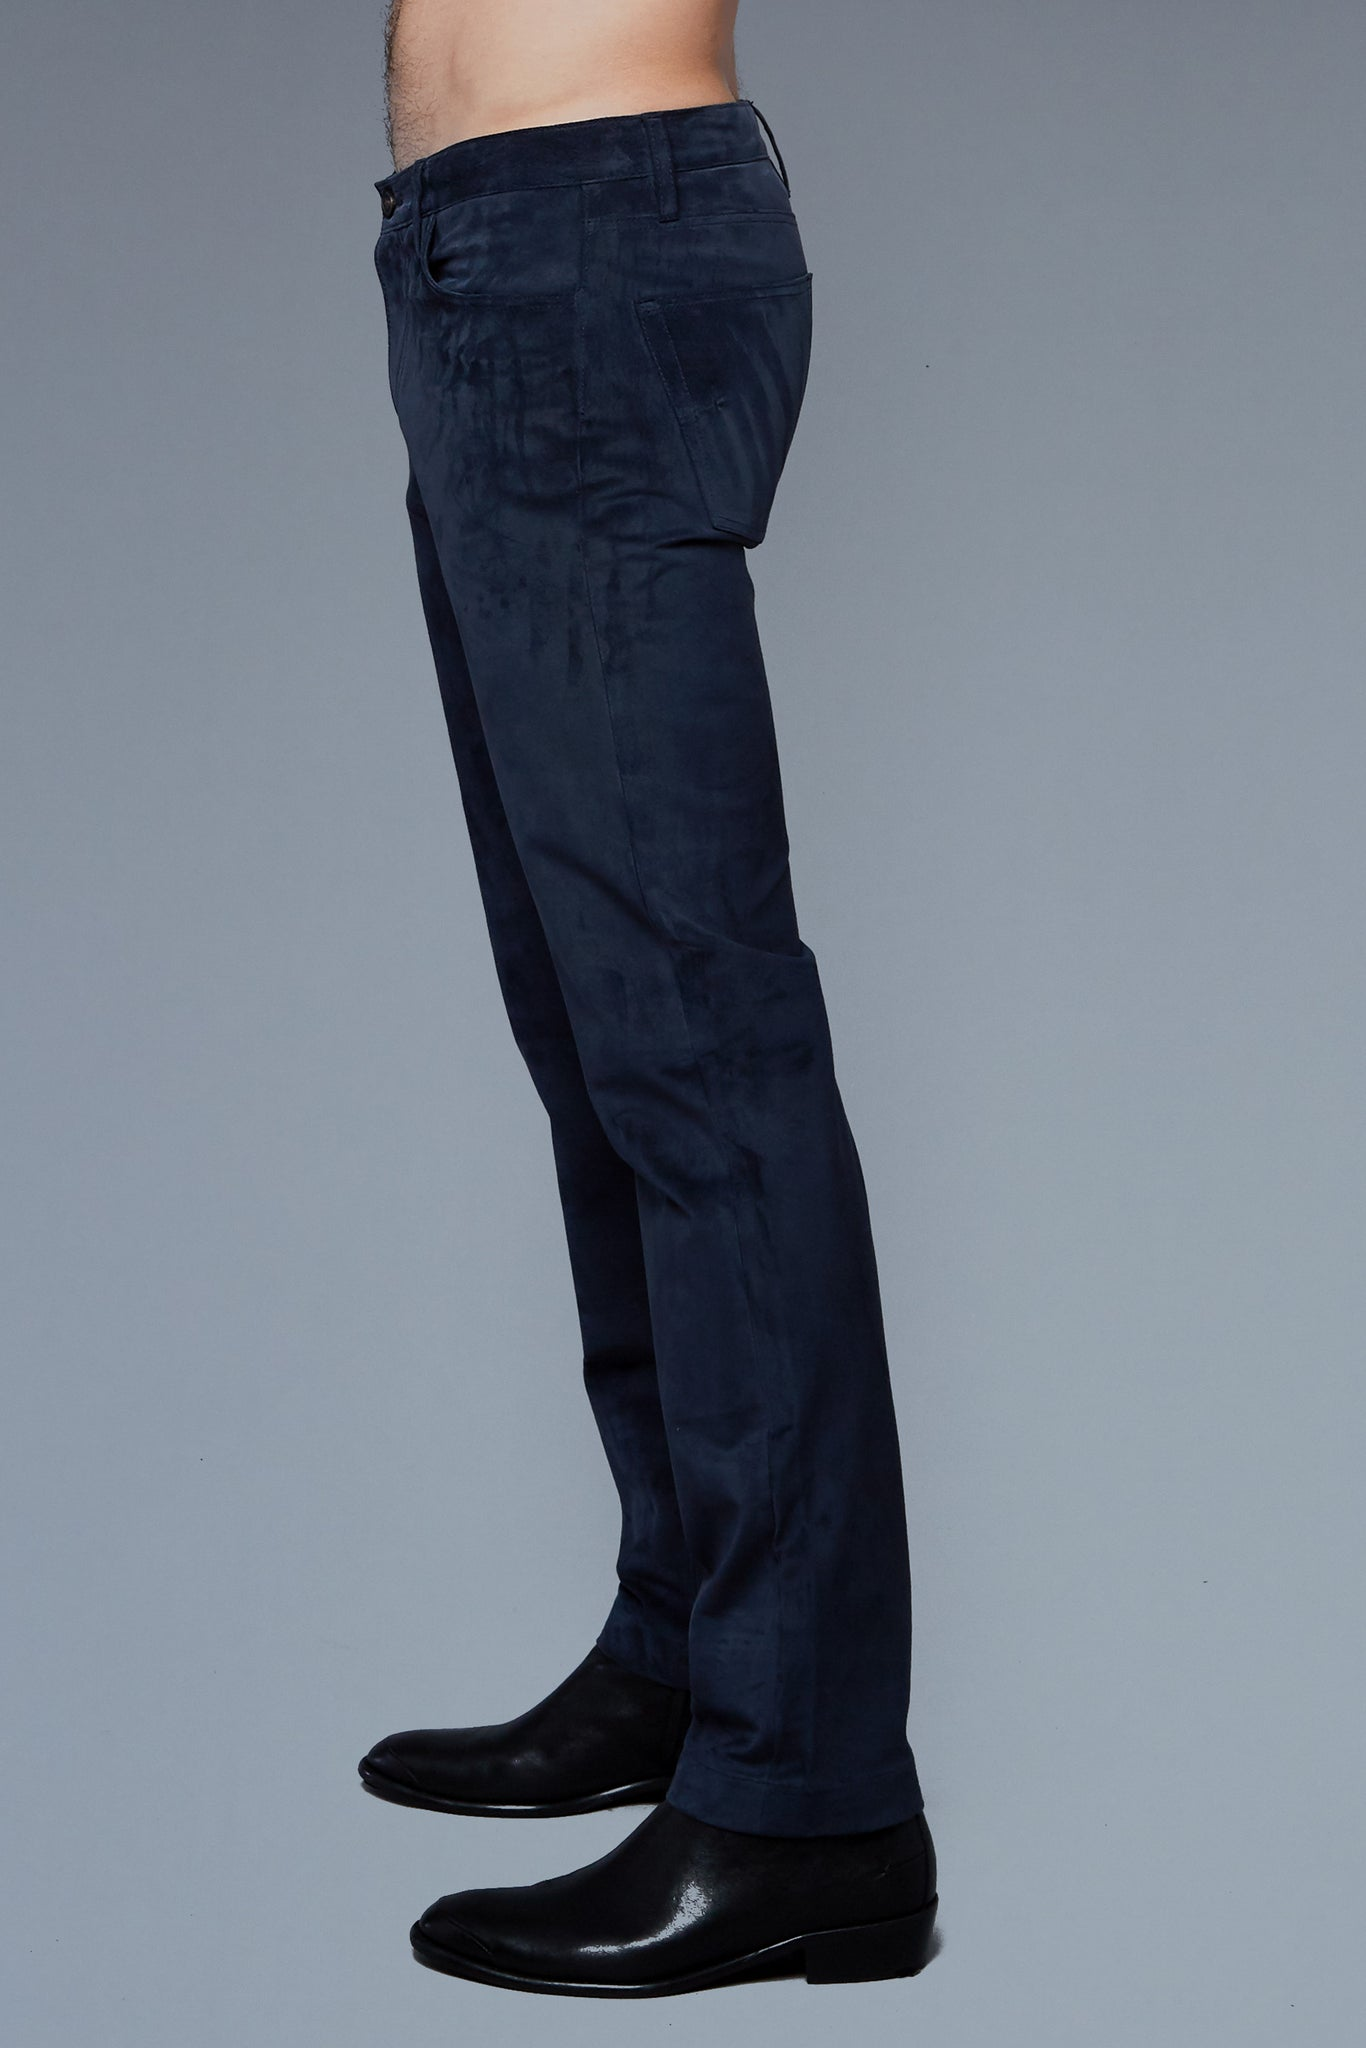 Side View: Model Hans Weiner wearing Suede 5 Pocket Pants